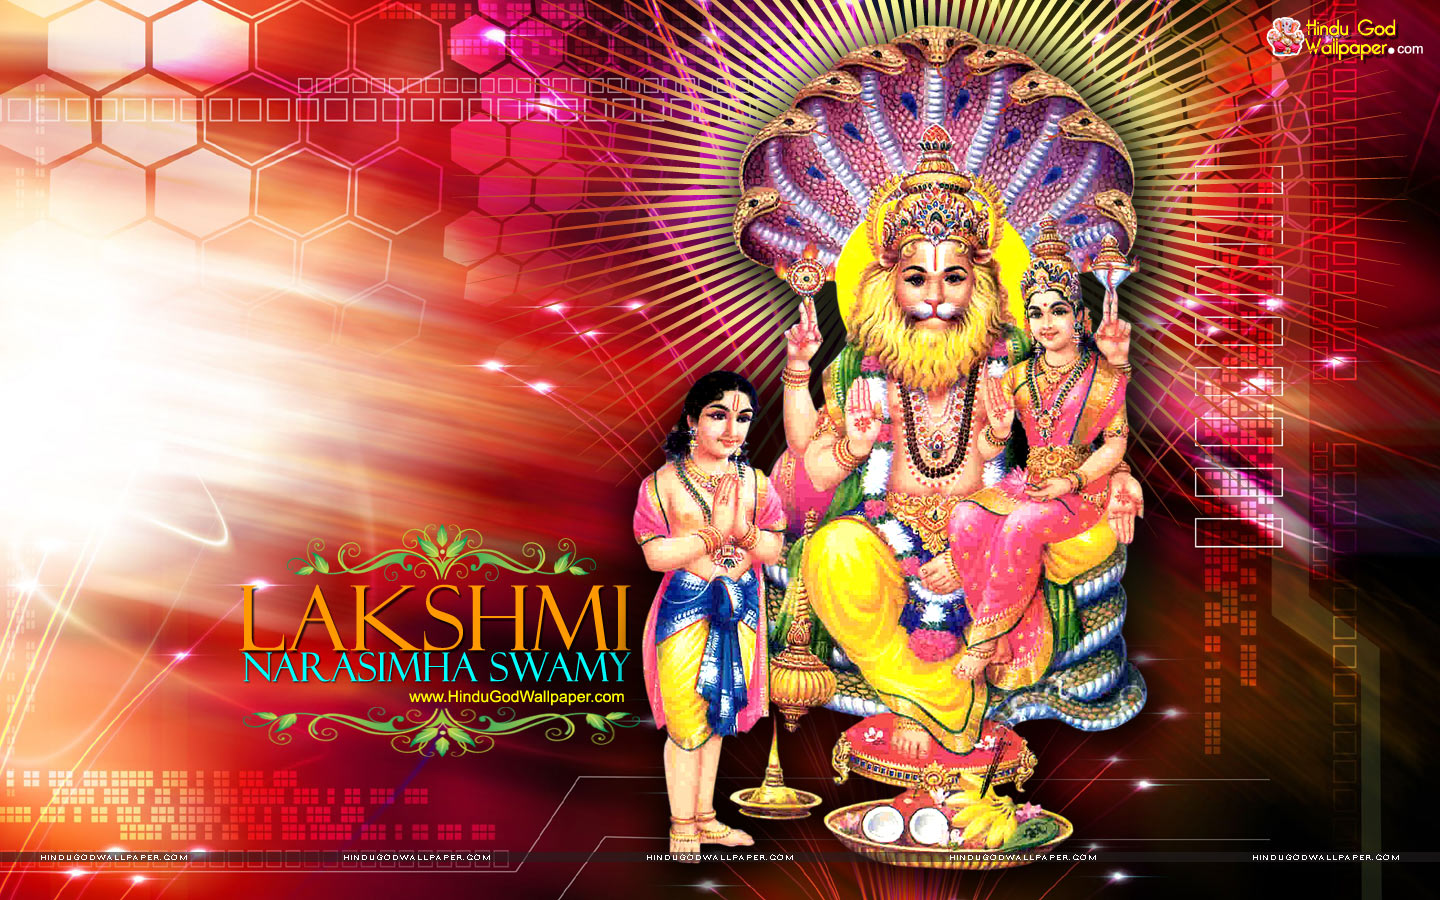 Lakshmi Narasimha Swamy Images Photos Pictures Download